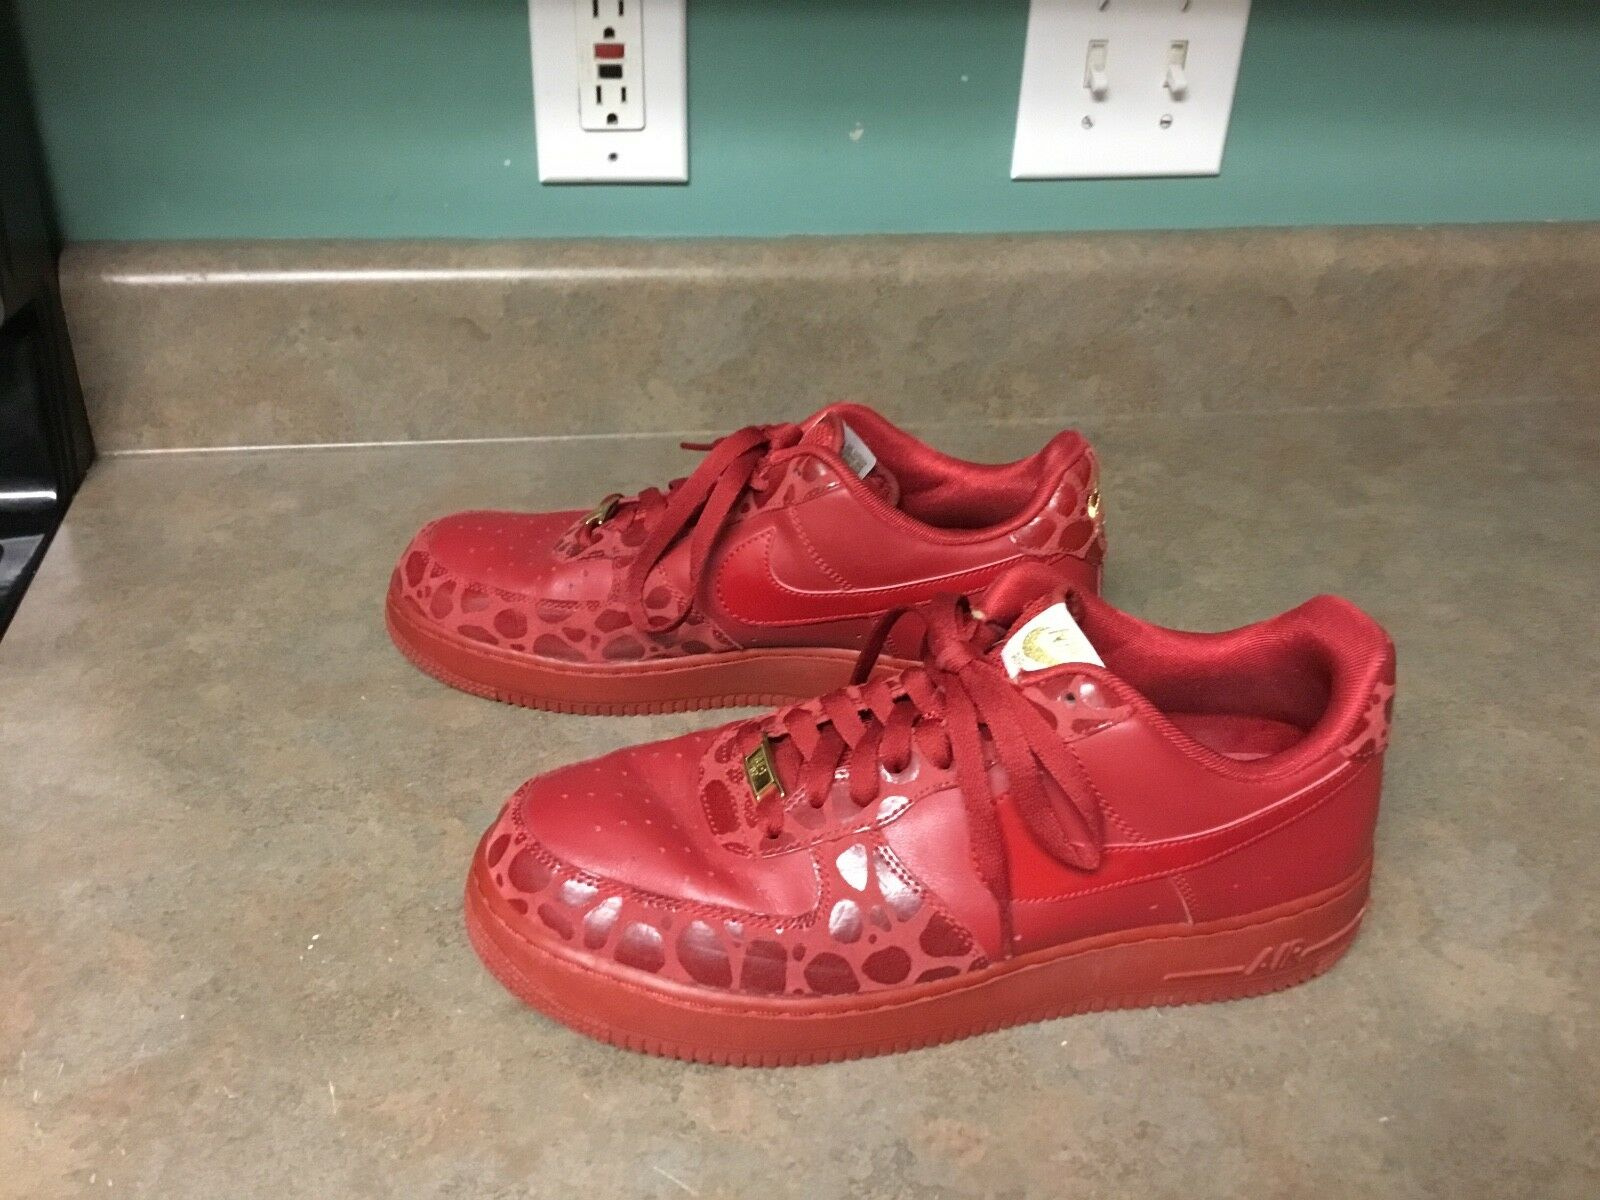 Women's Nike Air Force 1 '07 Valentines Day Red/Gold 315115-600 Size 12